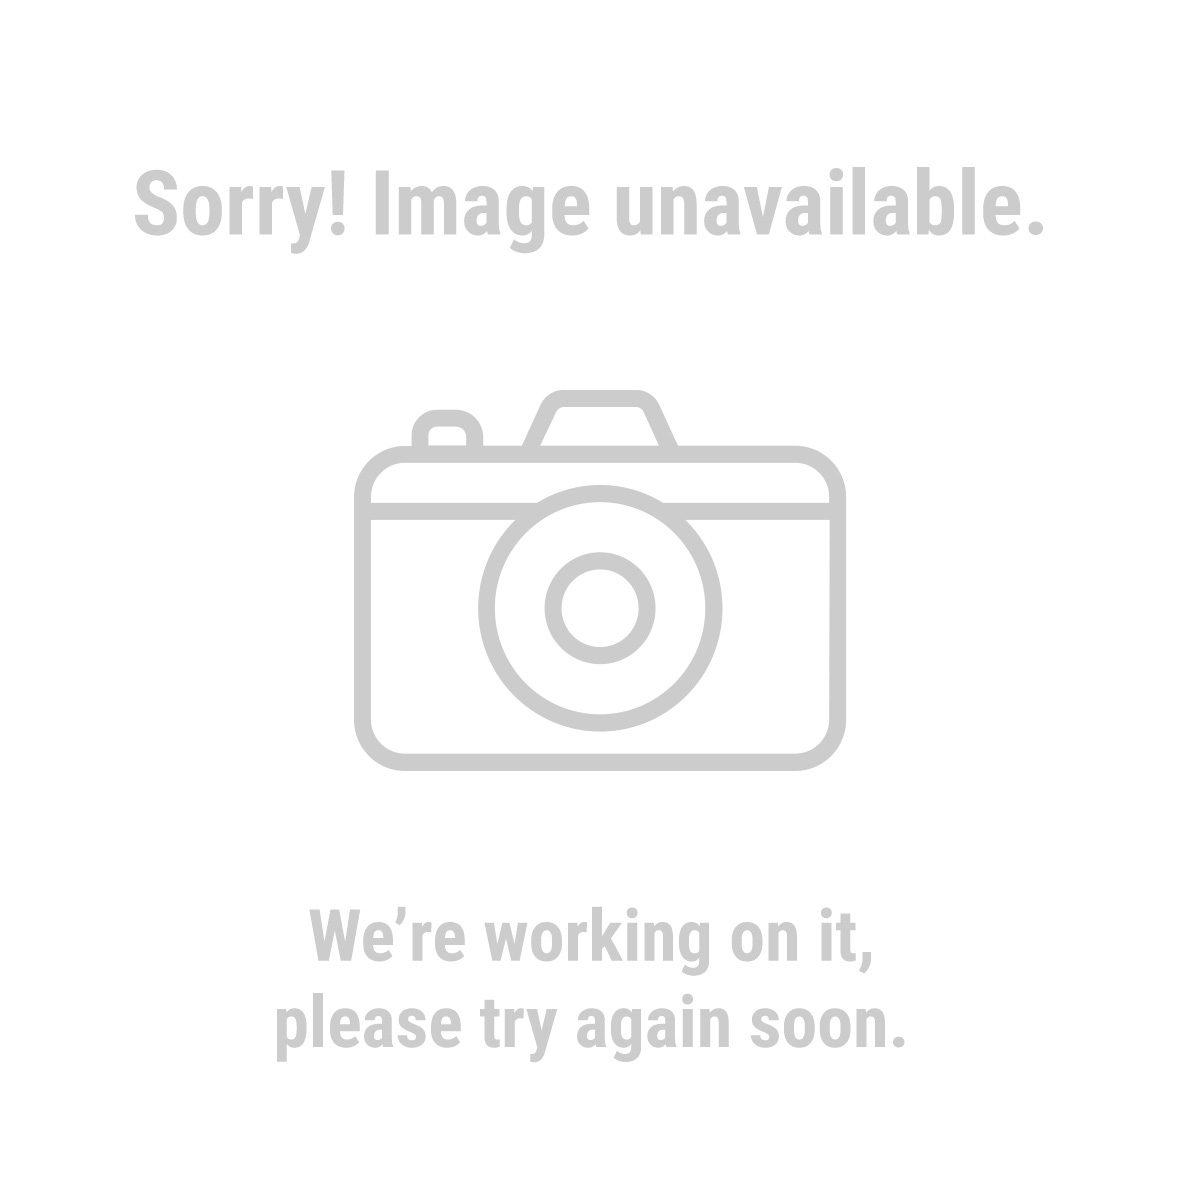 HFT 69206 28 ft. 10 in. x 39 ft. 4 in. Reflective Heavy Duty Silver Tarp